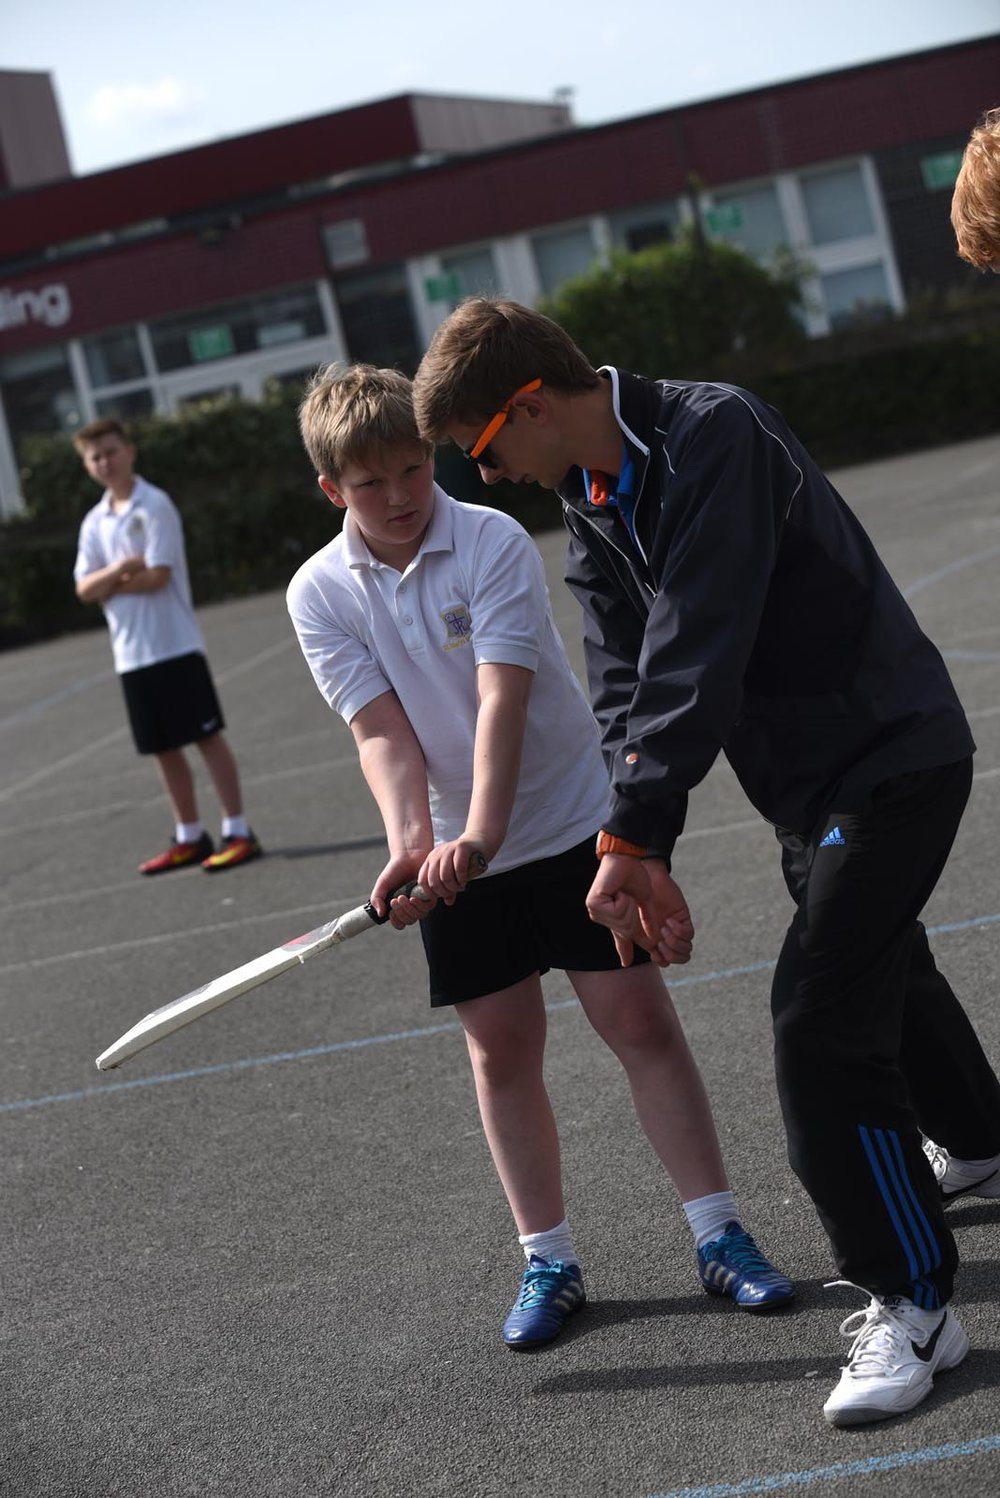 PE lesson, trainee teacher at St. Mary's Menston